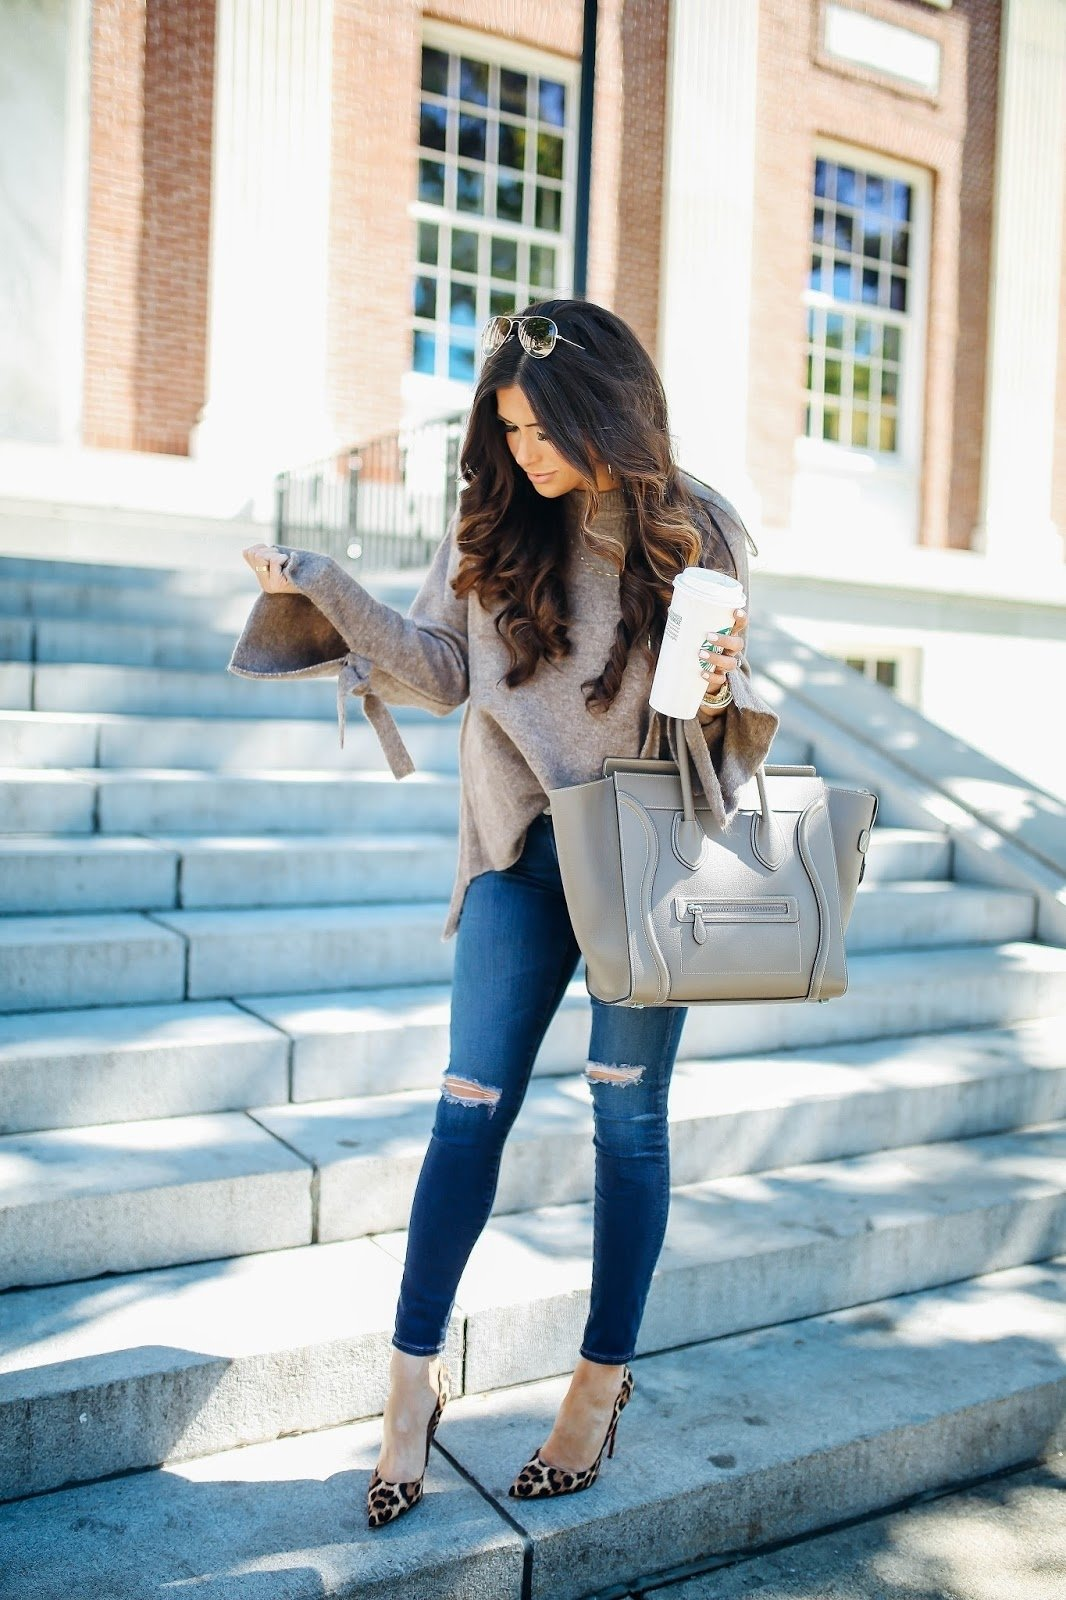 10 Most Recommended Pinterest Outfit Ideas For Fall a casual fall outfit from burlington vt the sweetest thing 1 2020